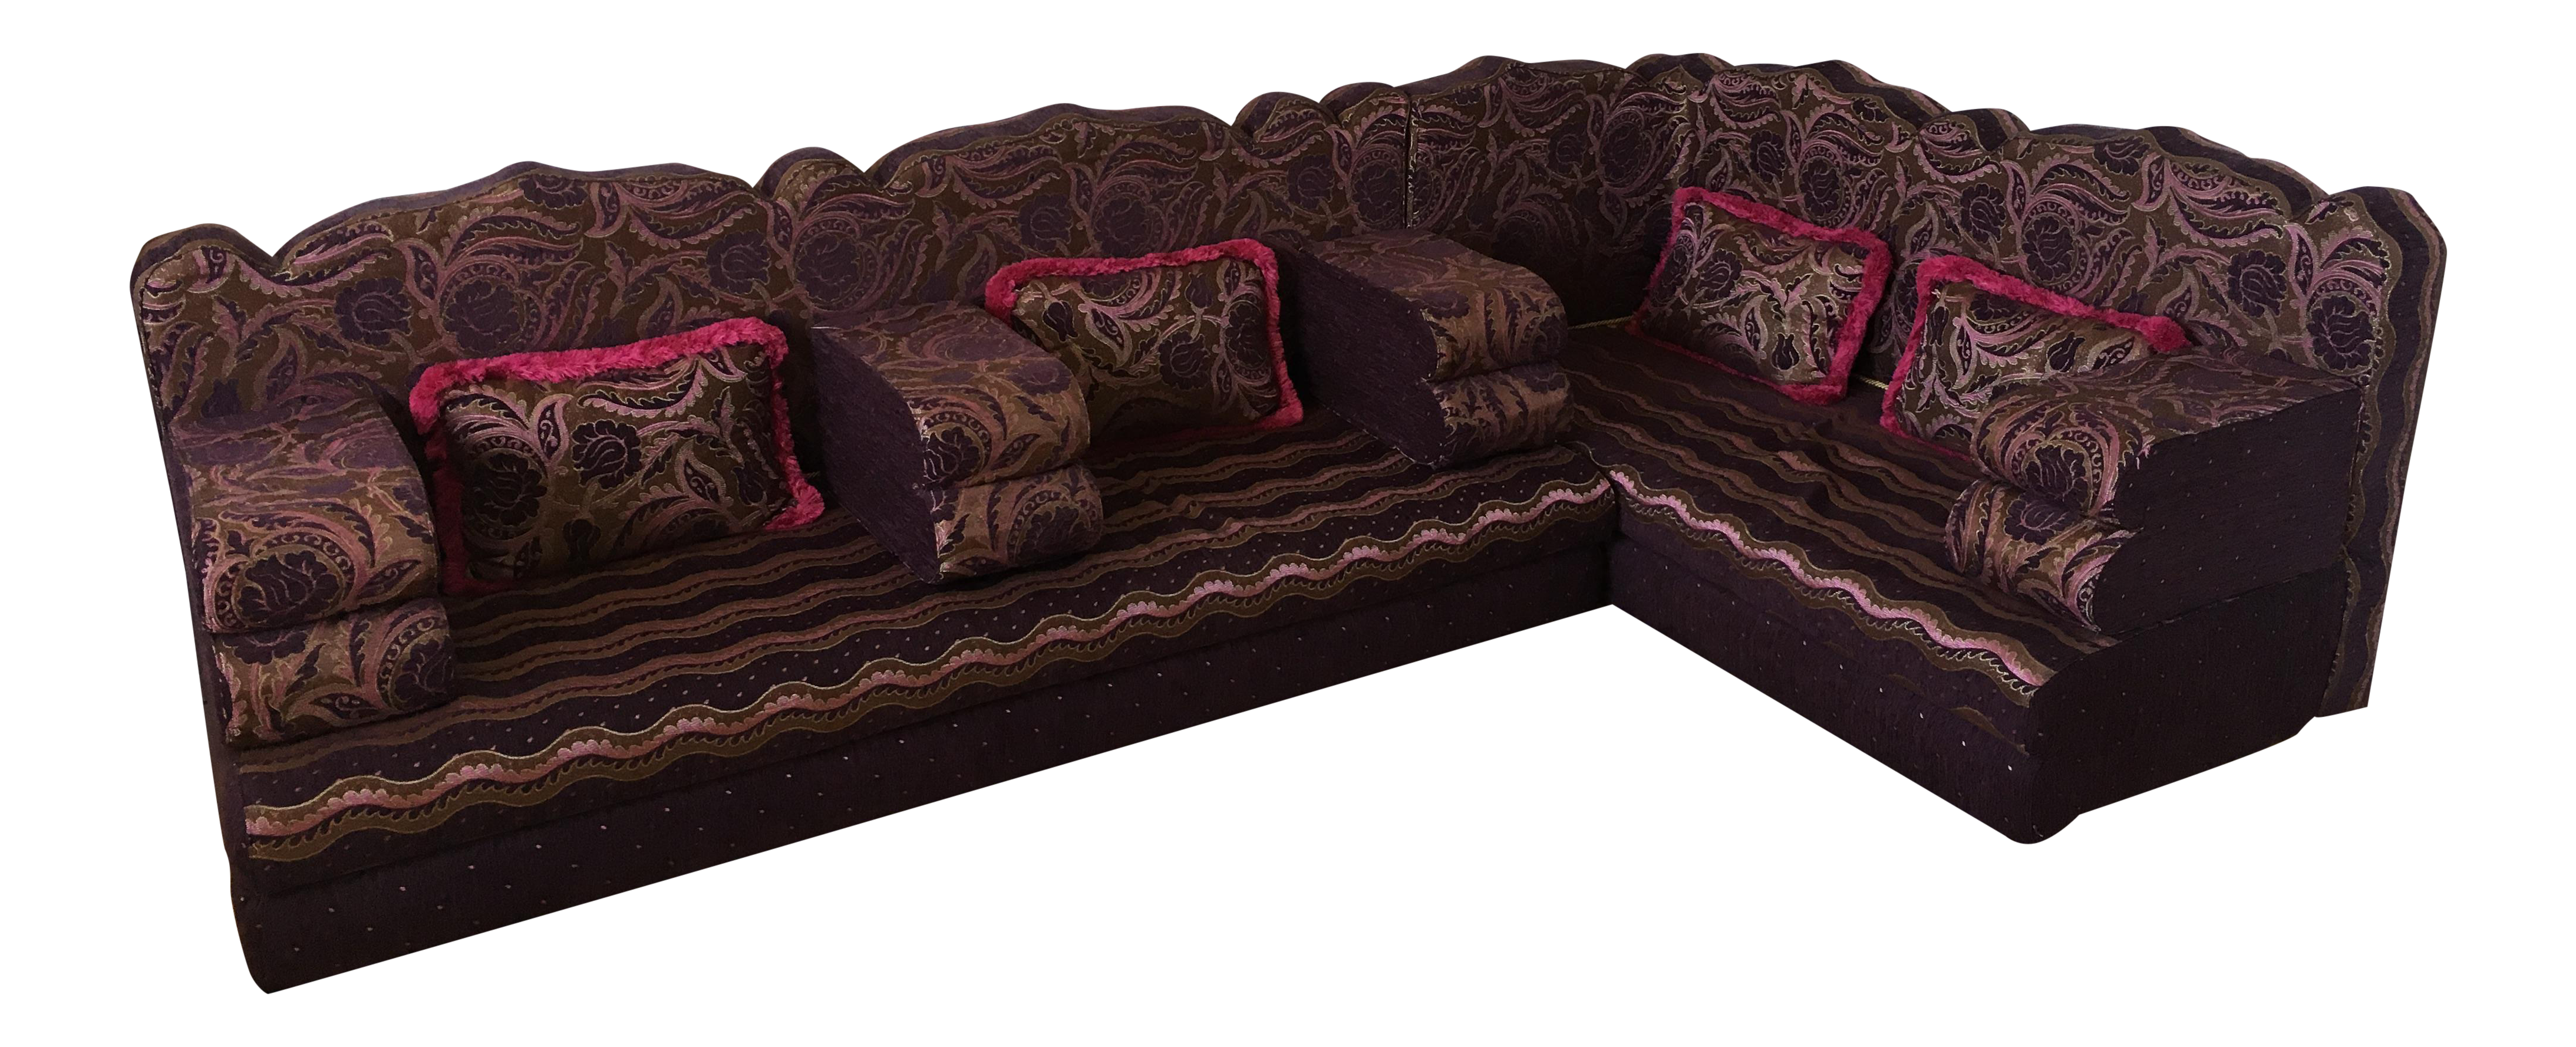 Abu Akram Son s Middle Eastern Dark Purple Sectional Sofa